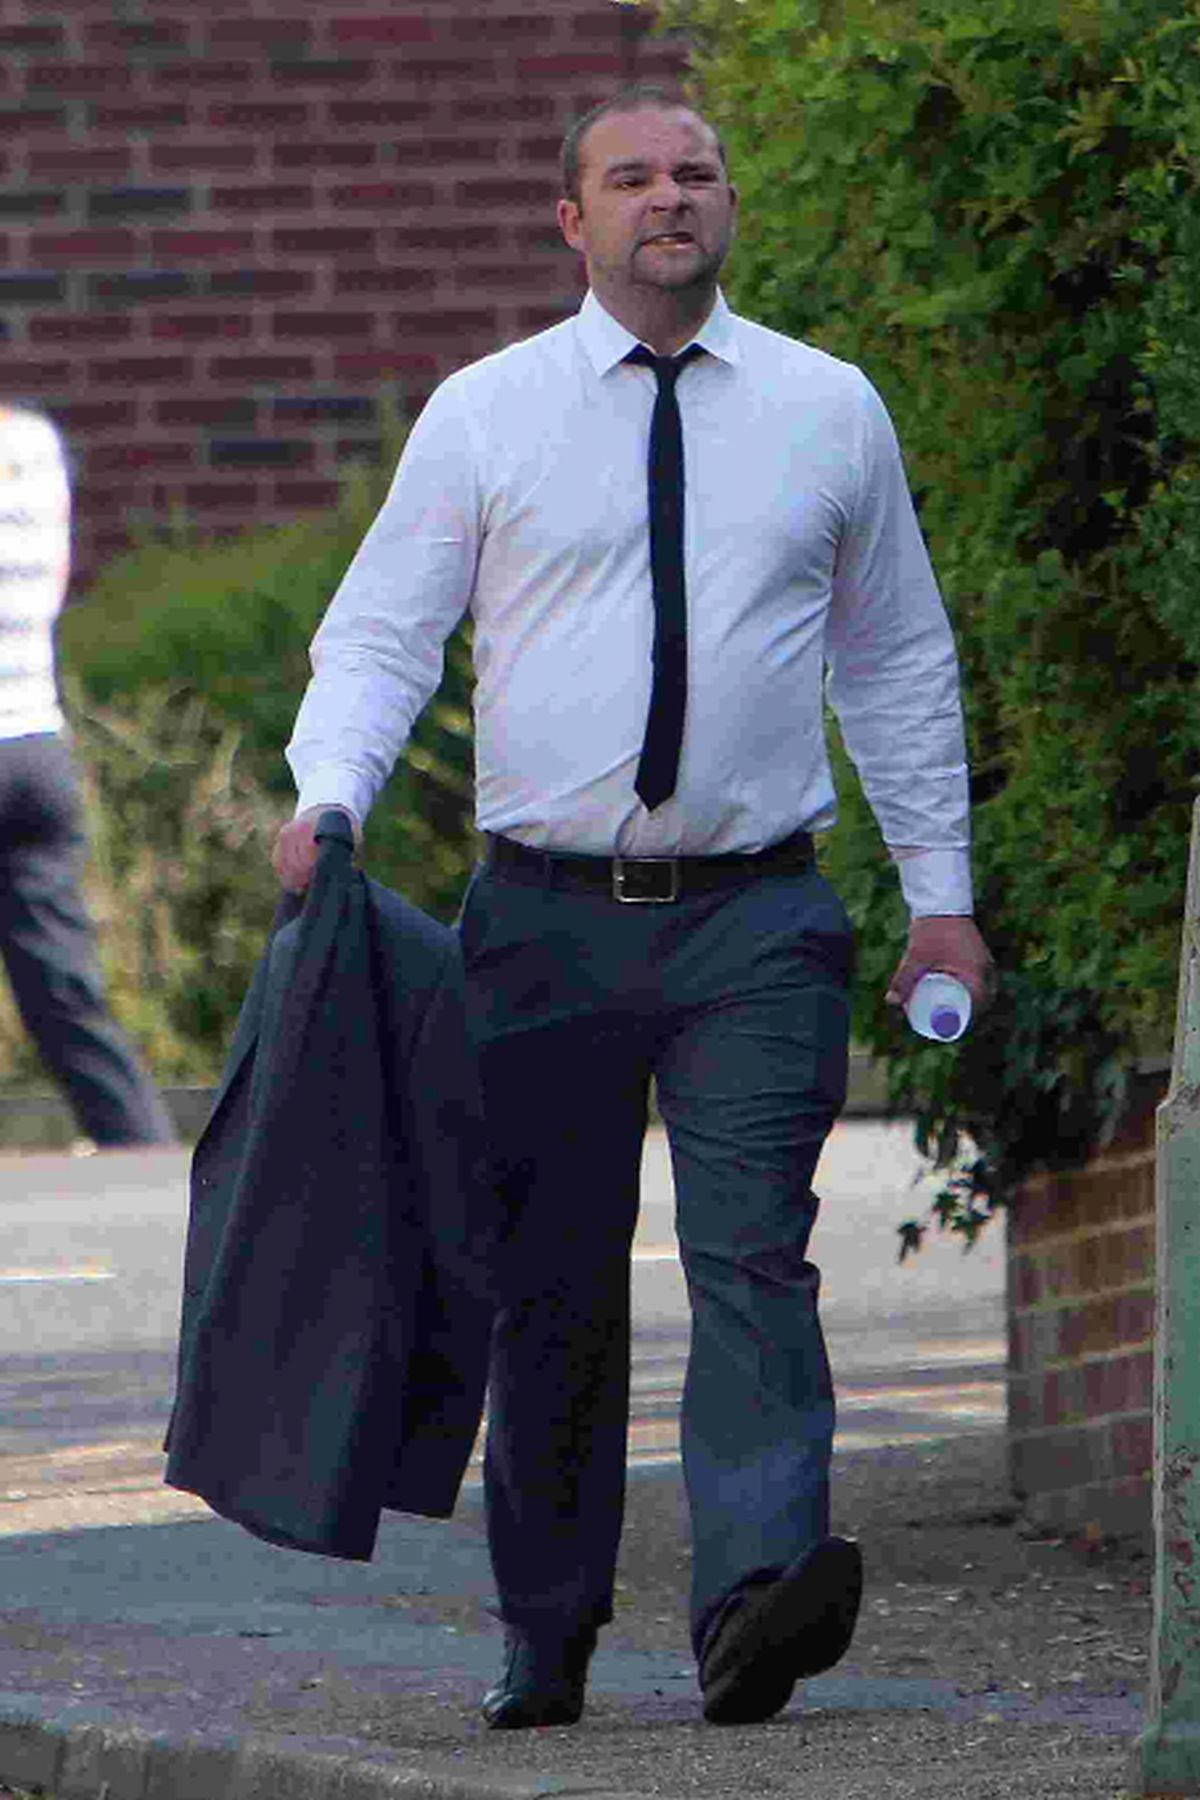 Workman who flashed teenager handed community two-year order